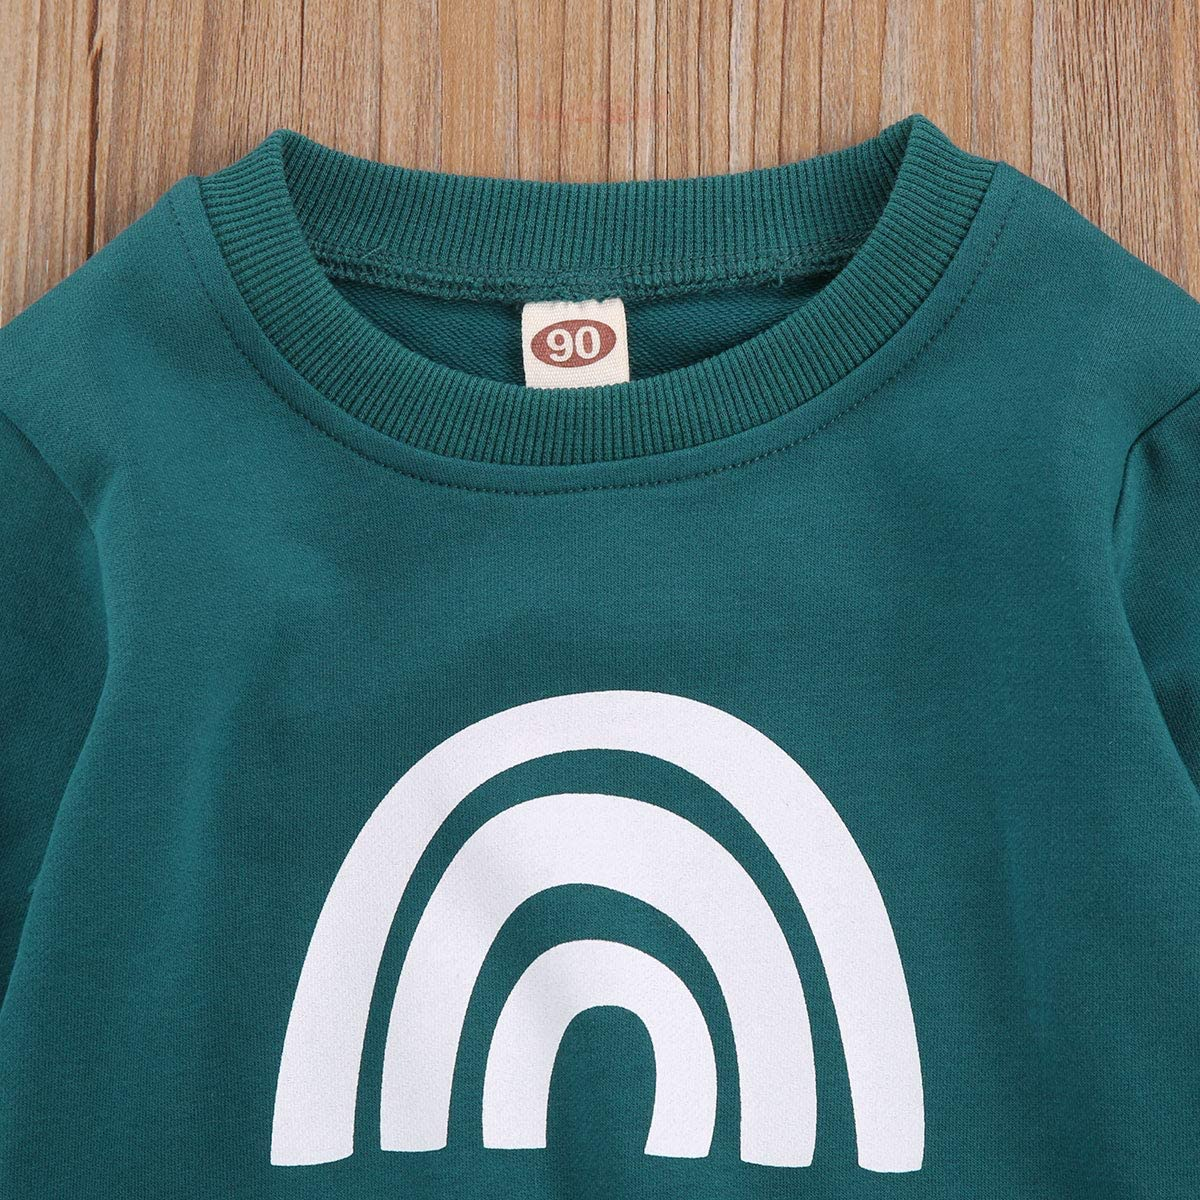 Kids Toddler Baby Boy Girl Fall Winter Outfits Rainbow Pullover Sweatshirt Long Sleeve T-Shirt Cotton Sweater Tops